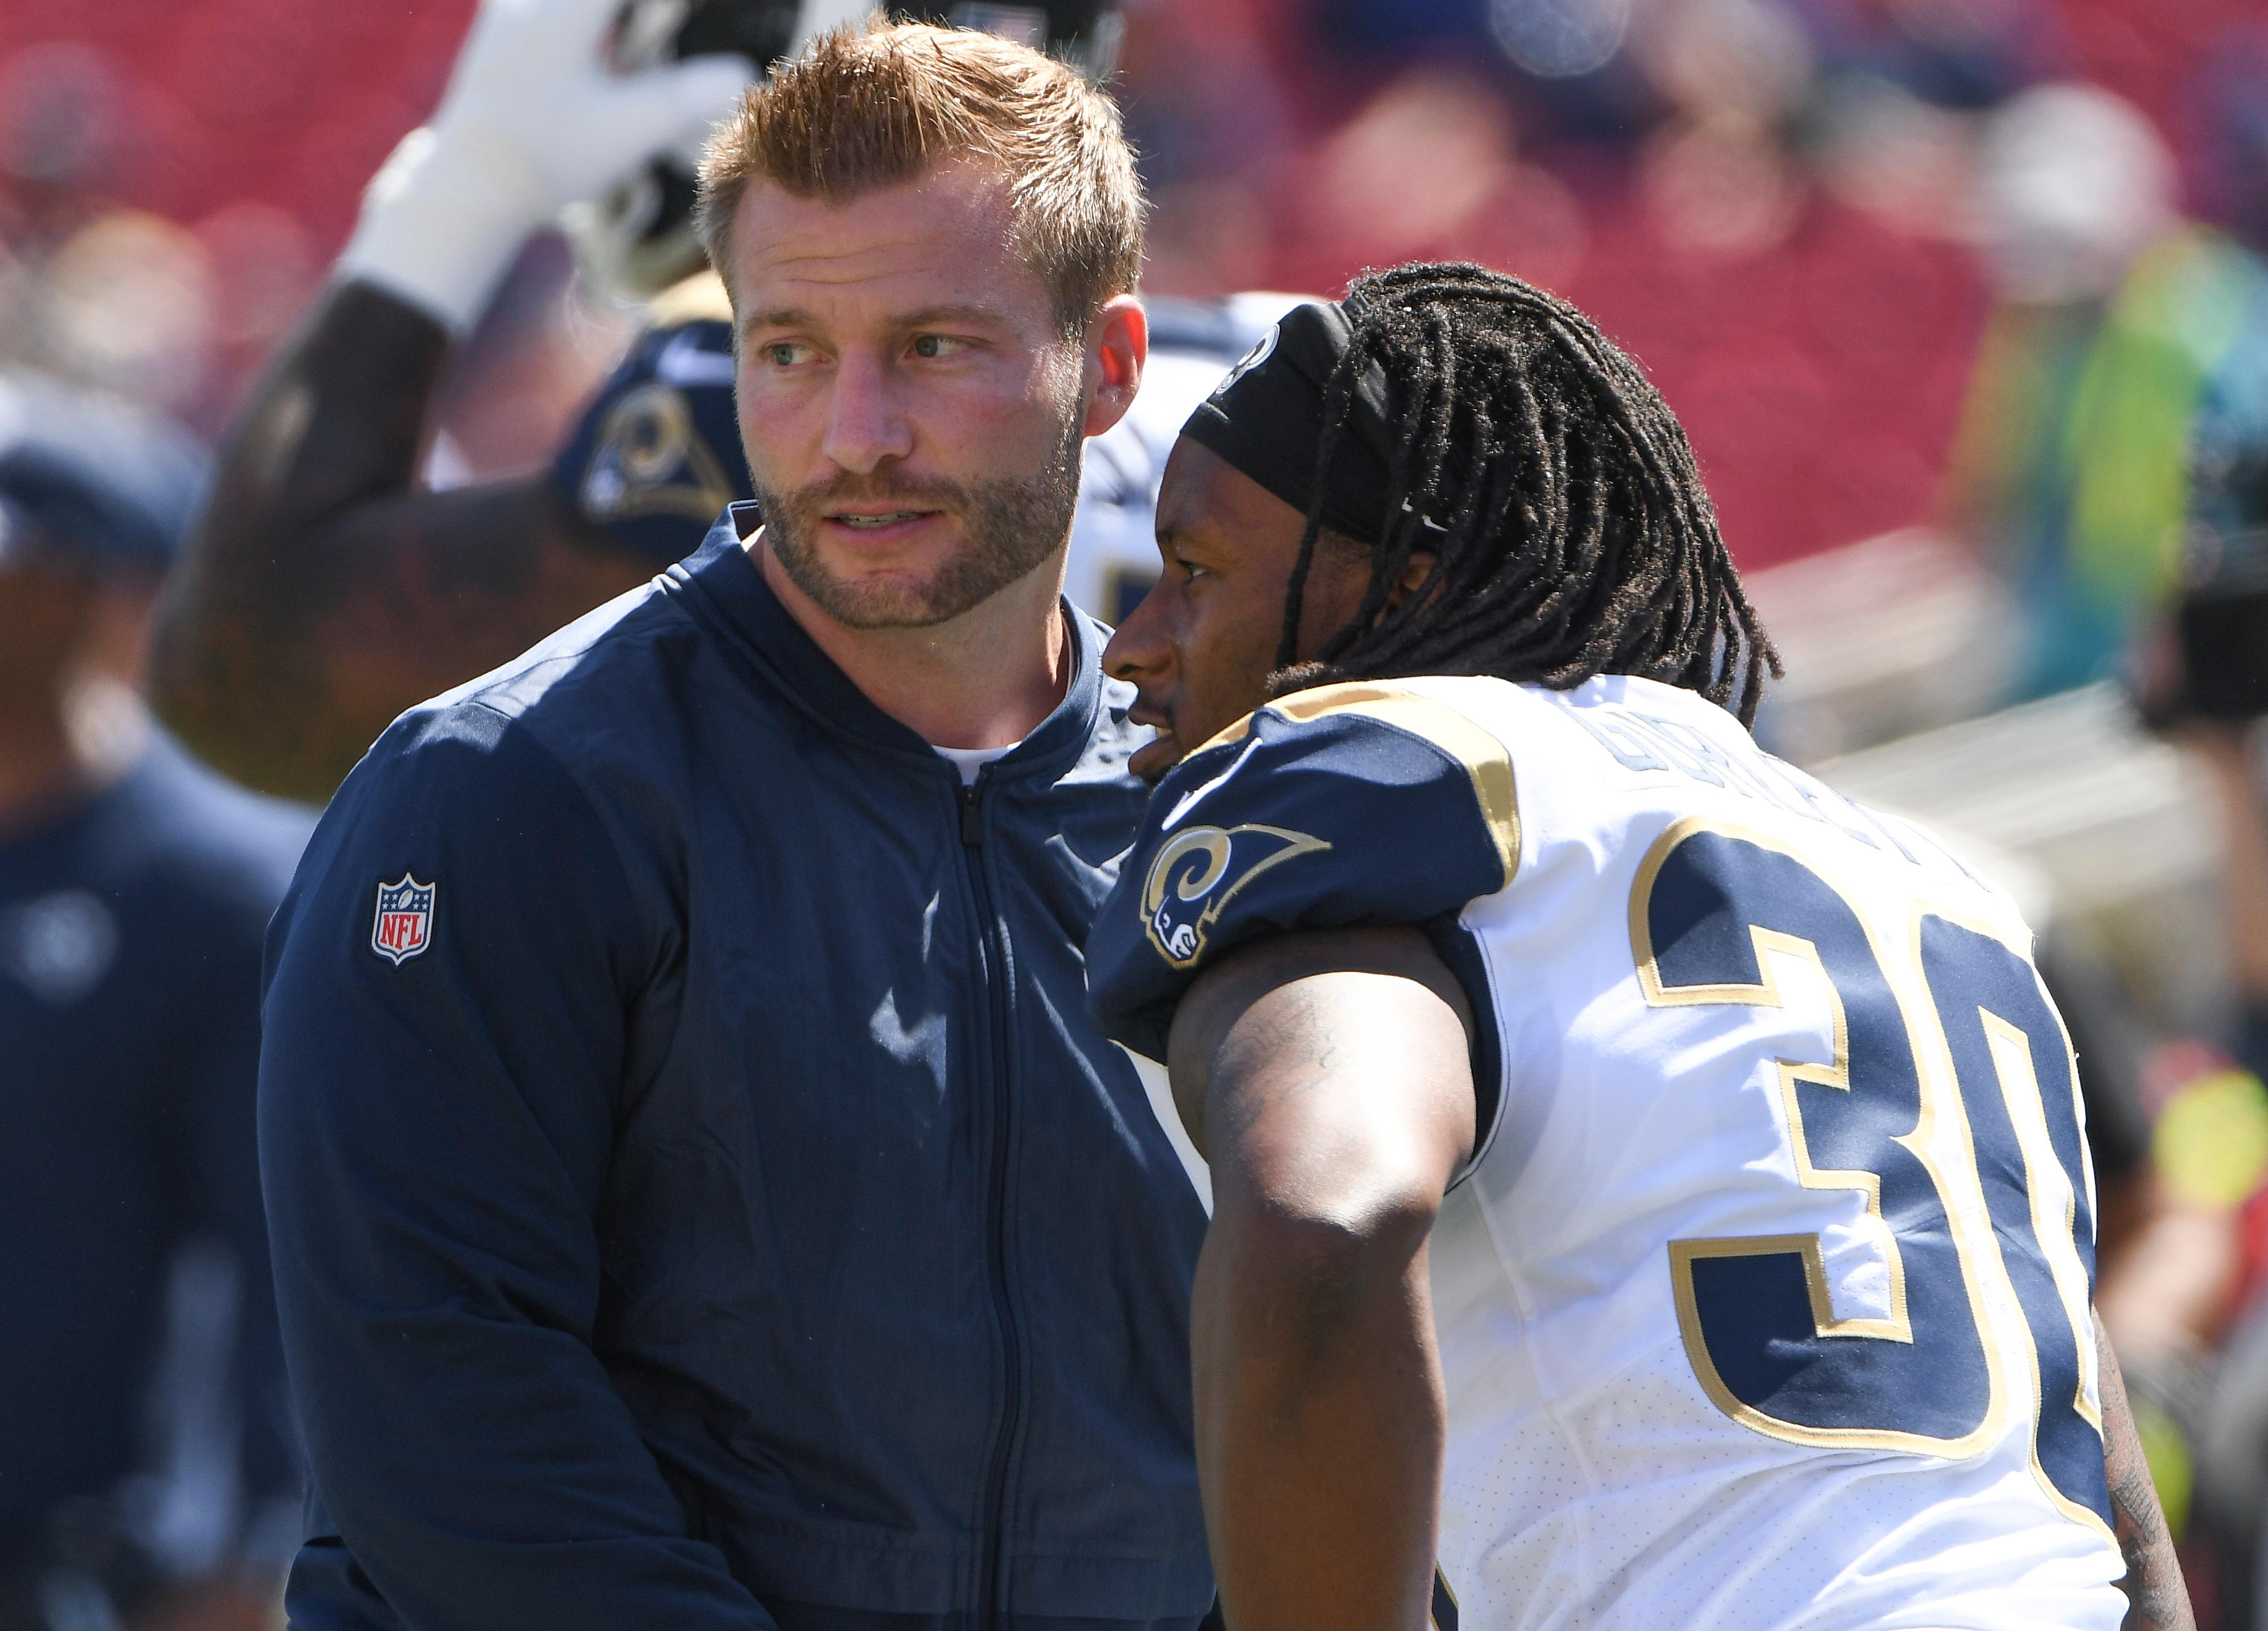 Sean McVay praises Todd Gurley after cutting him, says he's 'one of the all-time great Rams'